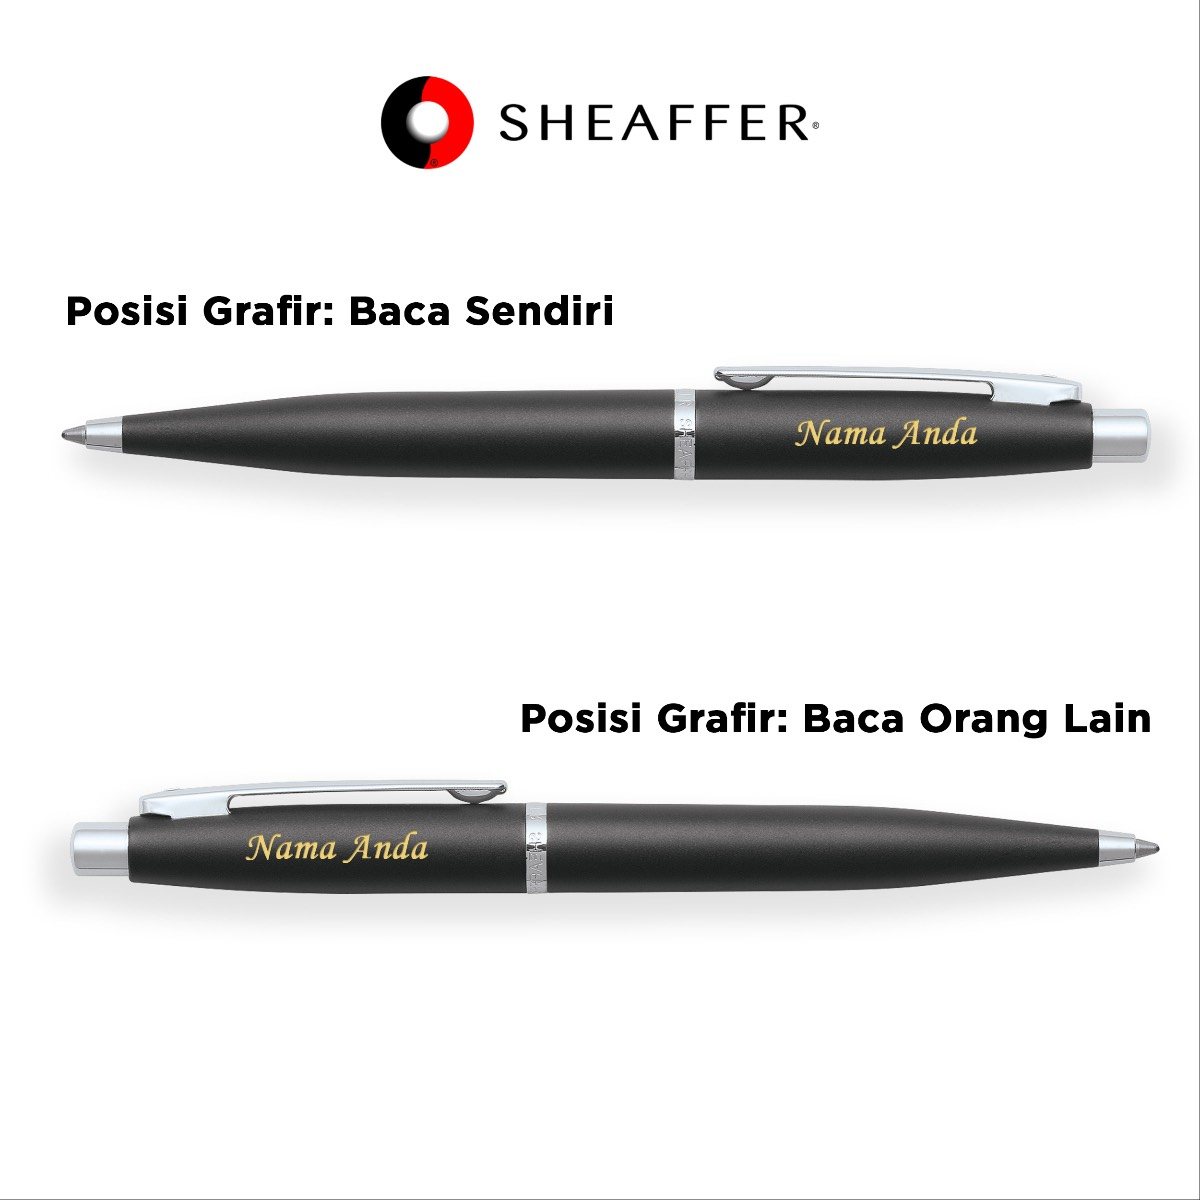 Sheaffer - Vfm - 7 Colors - Ballpoint2